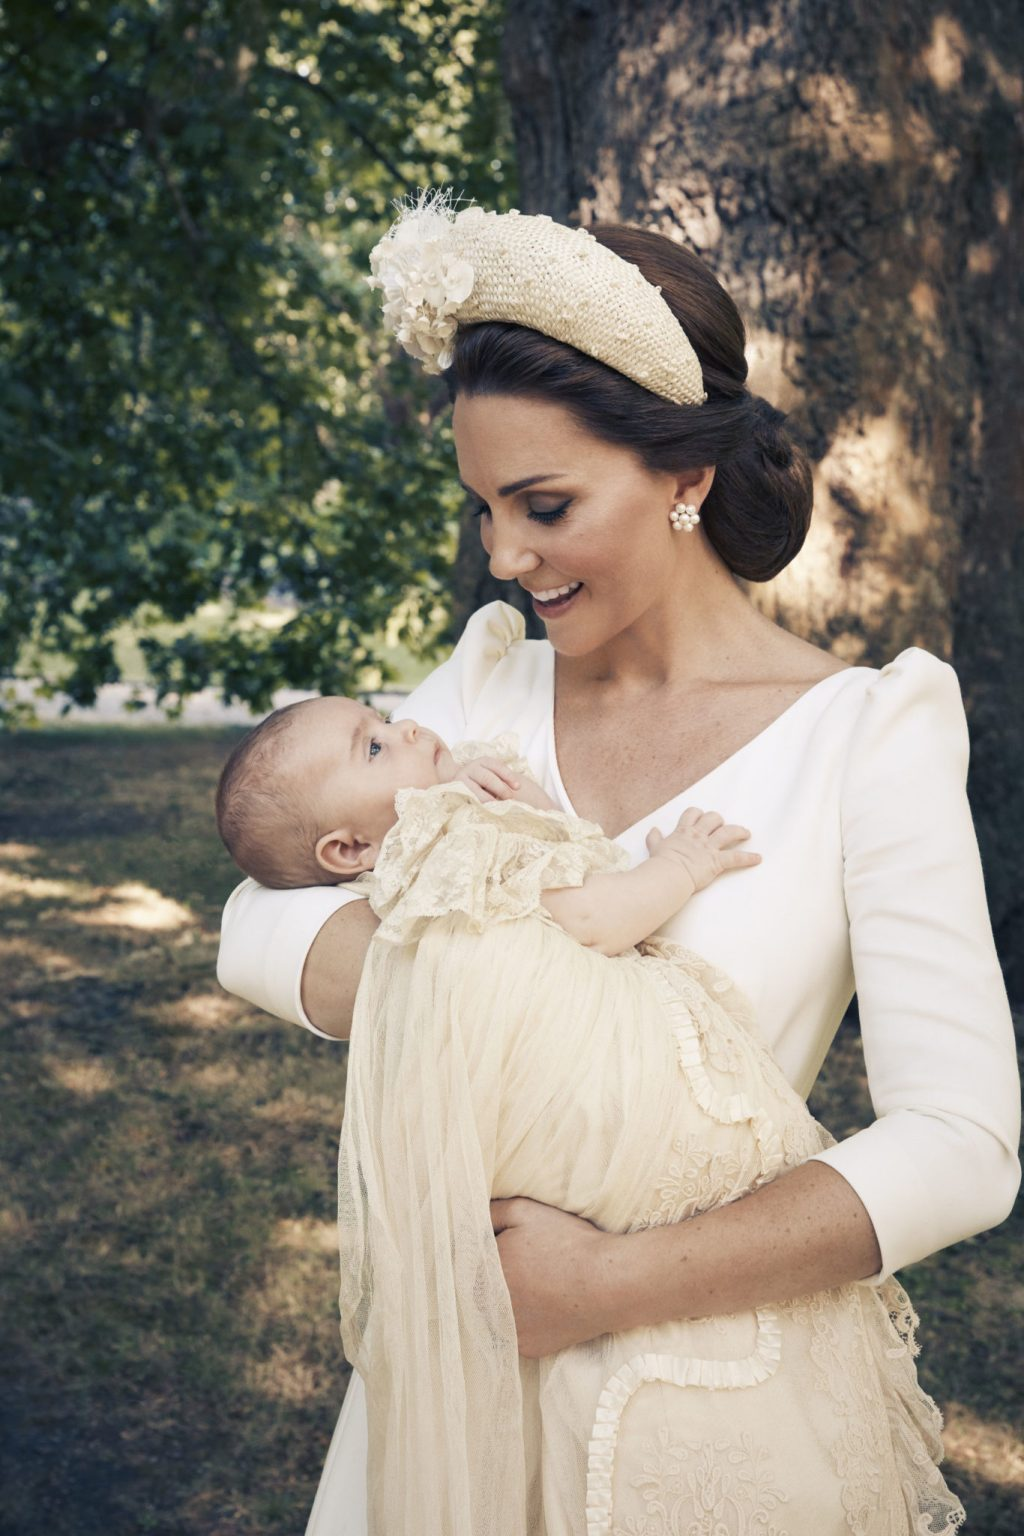 Be Still, Our Hearts — Prince Louis' Christening Photos Are Here